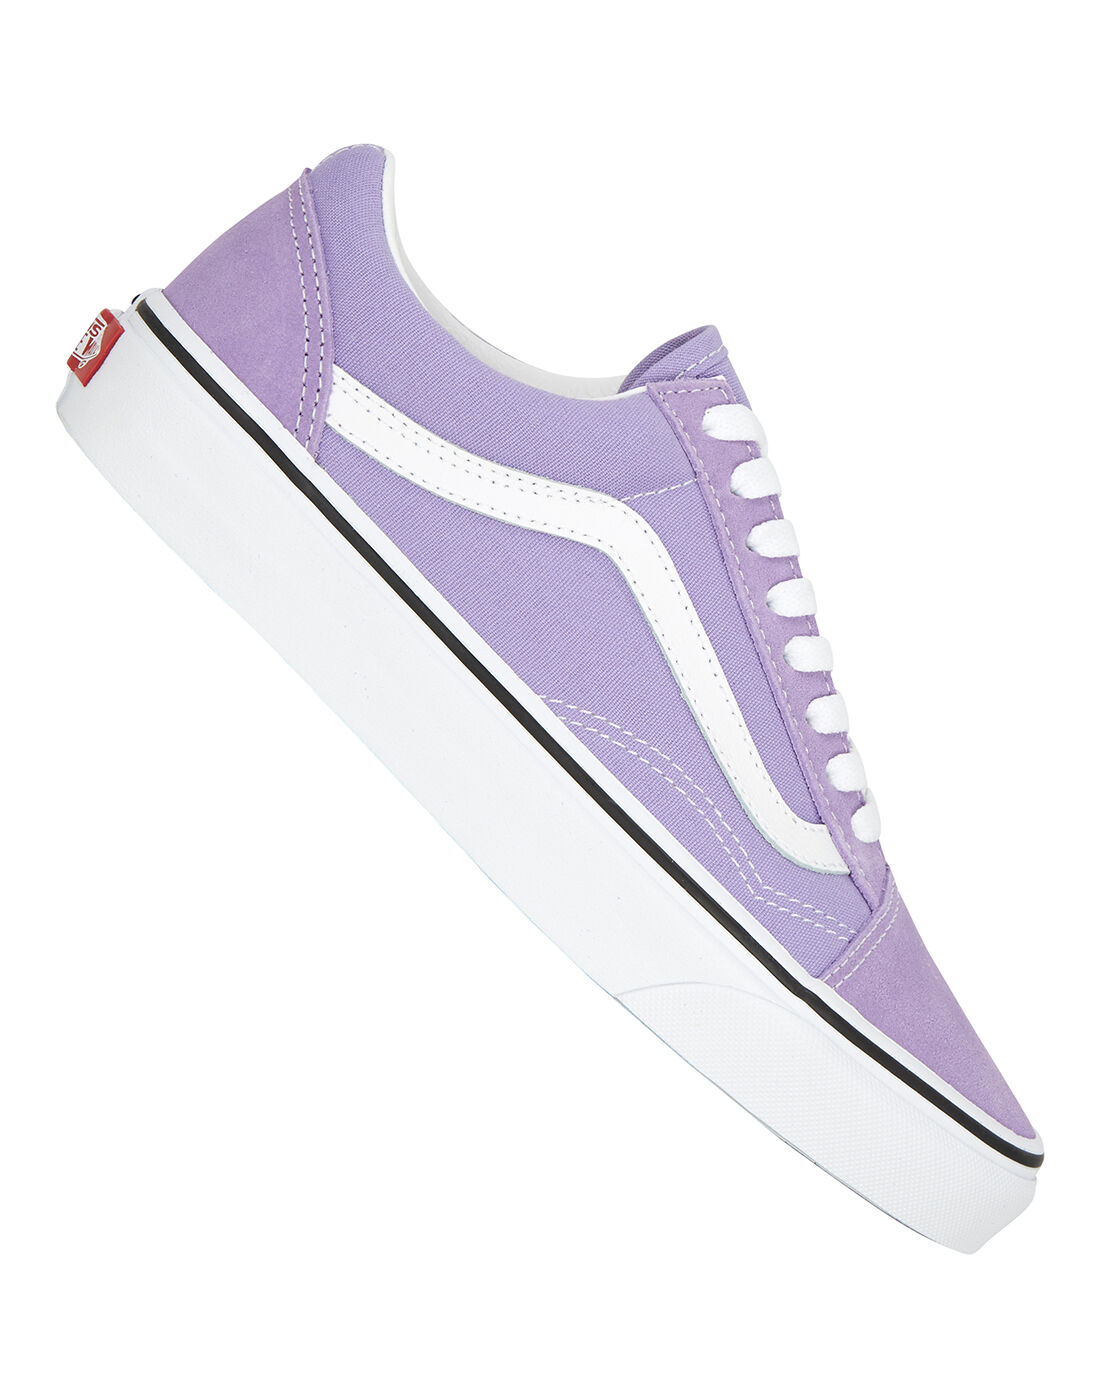 VANS OLD SKOOL vans old school sneakers men gap Dis station wagons purple VN0A38G1VRP